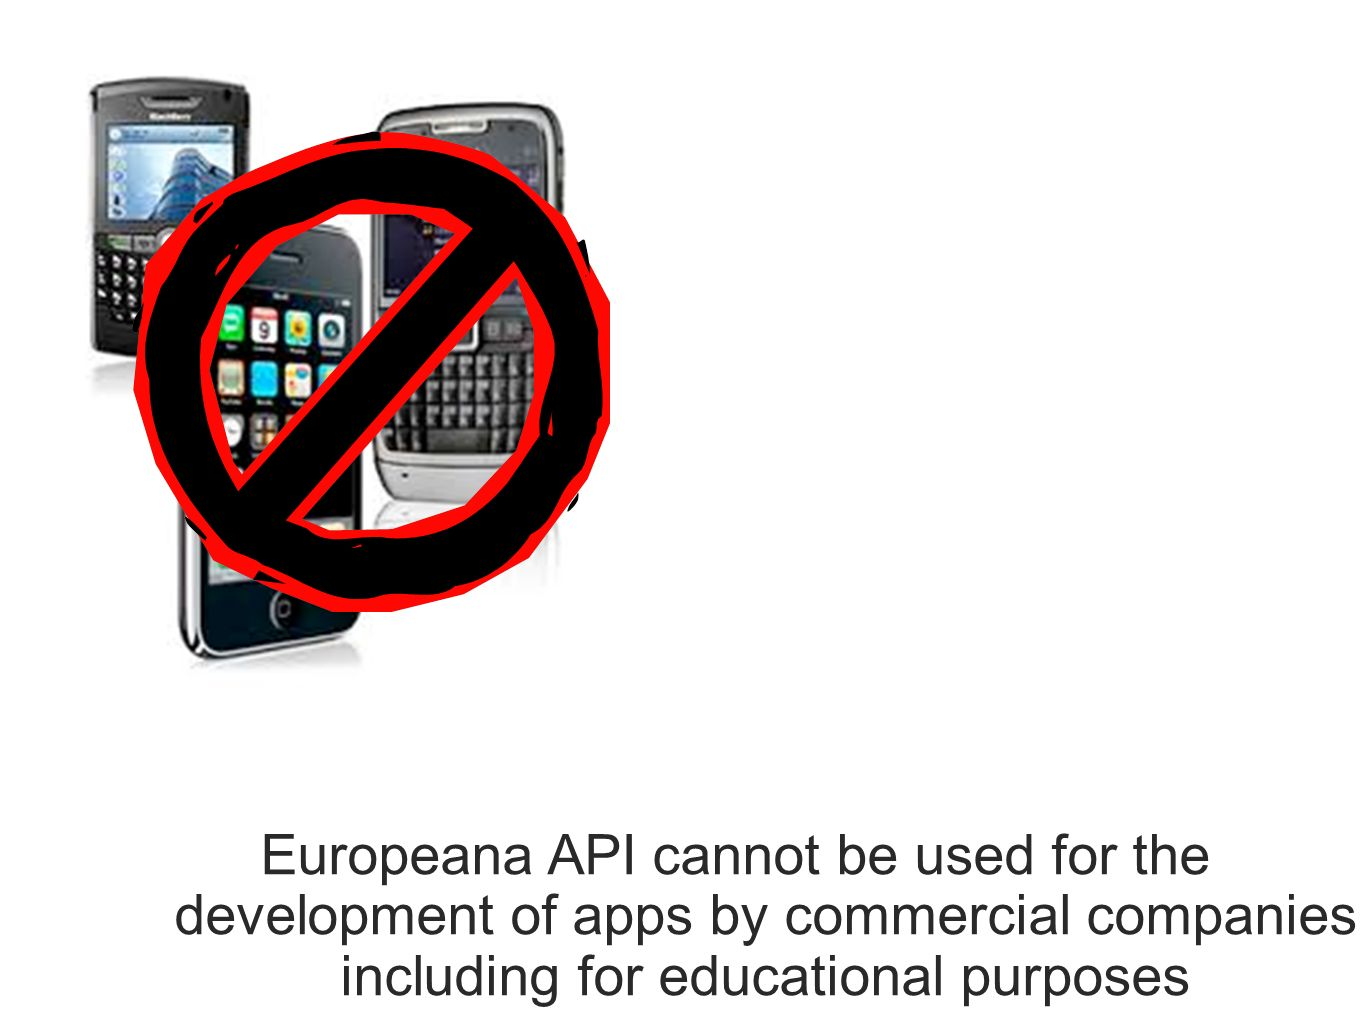 Europeana API cannot be used for the development of apps by commercial companies including for educational purposes